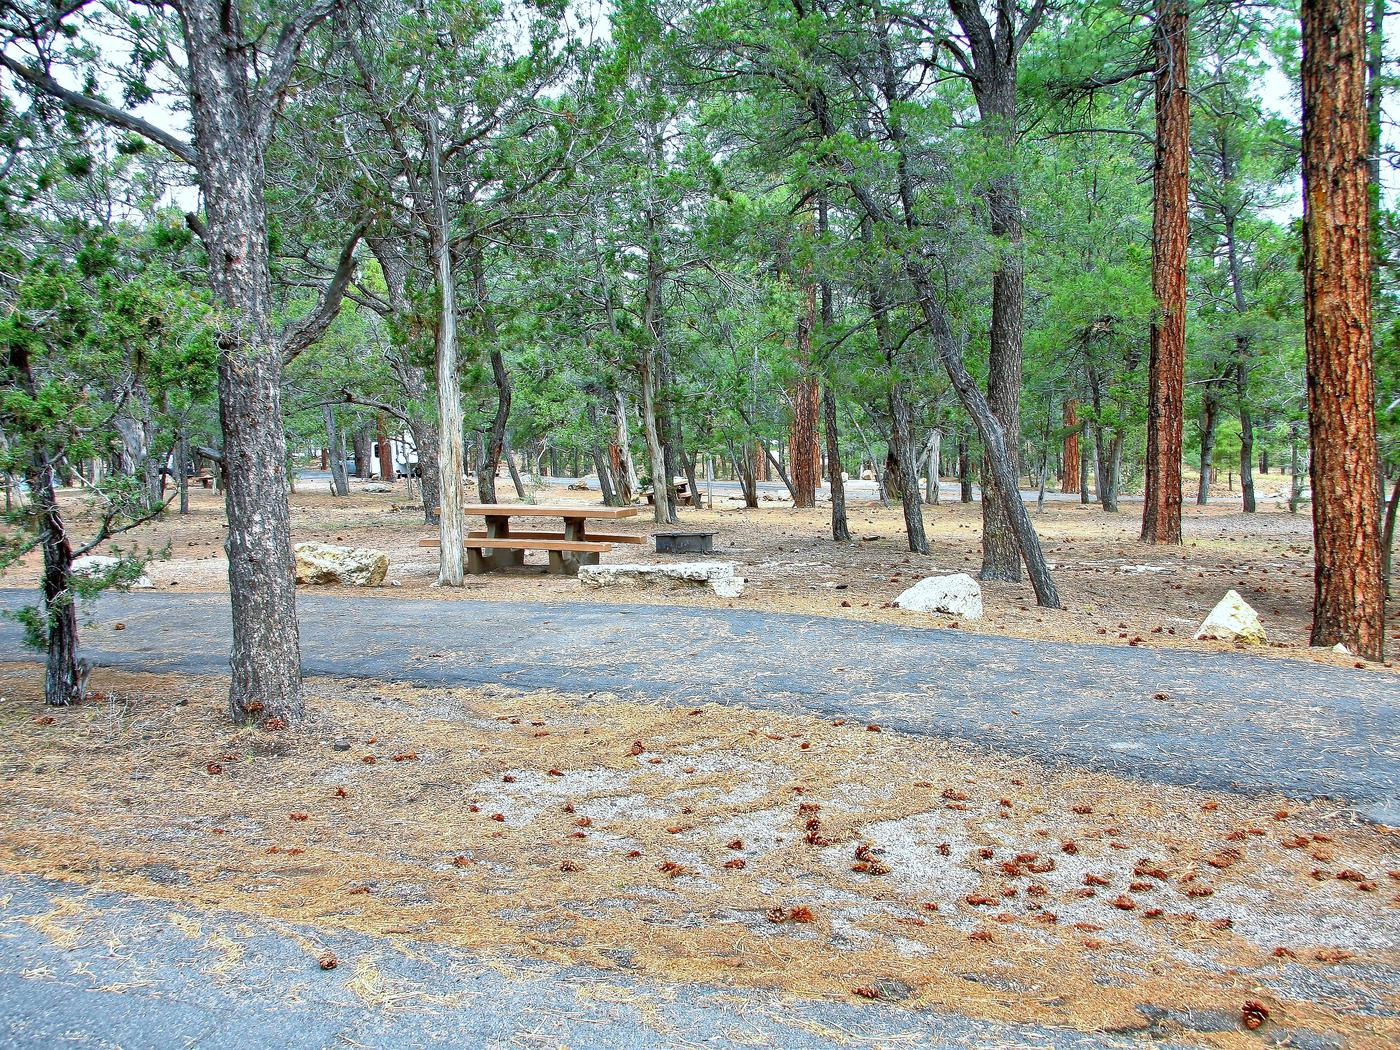 Picnic table, fire pit, and parking spot, Mather CampgroundThe picnic table, fire pit, and parking spot for Aspen Loop 52, Mather Campground